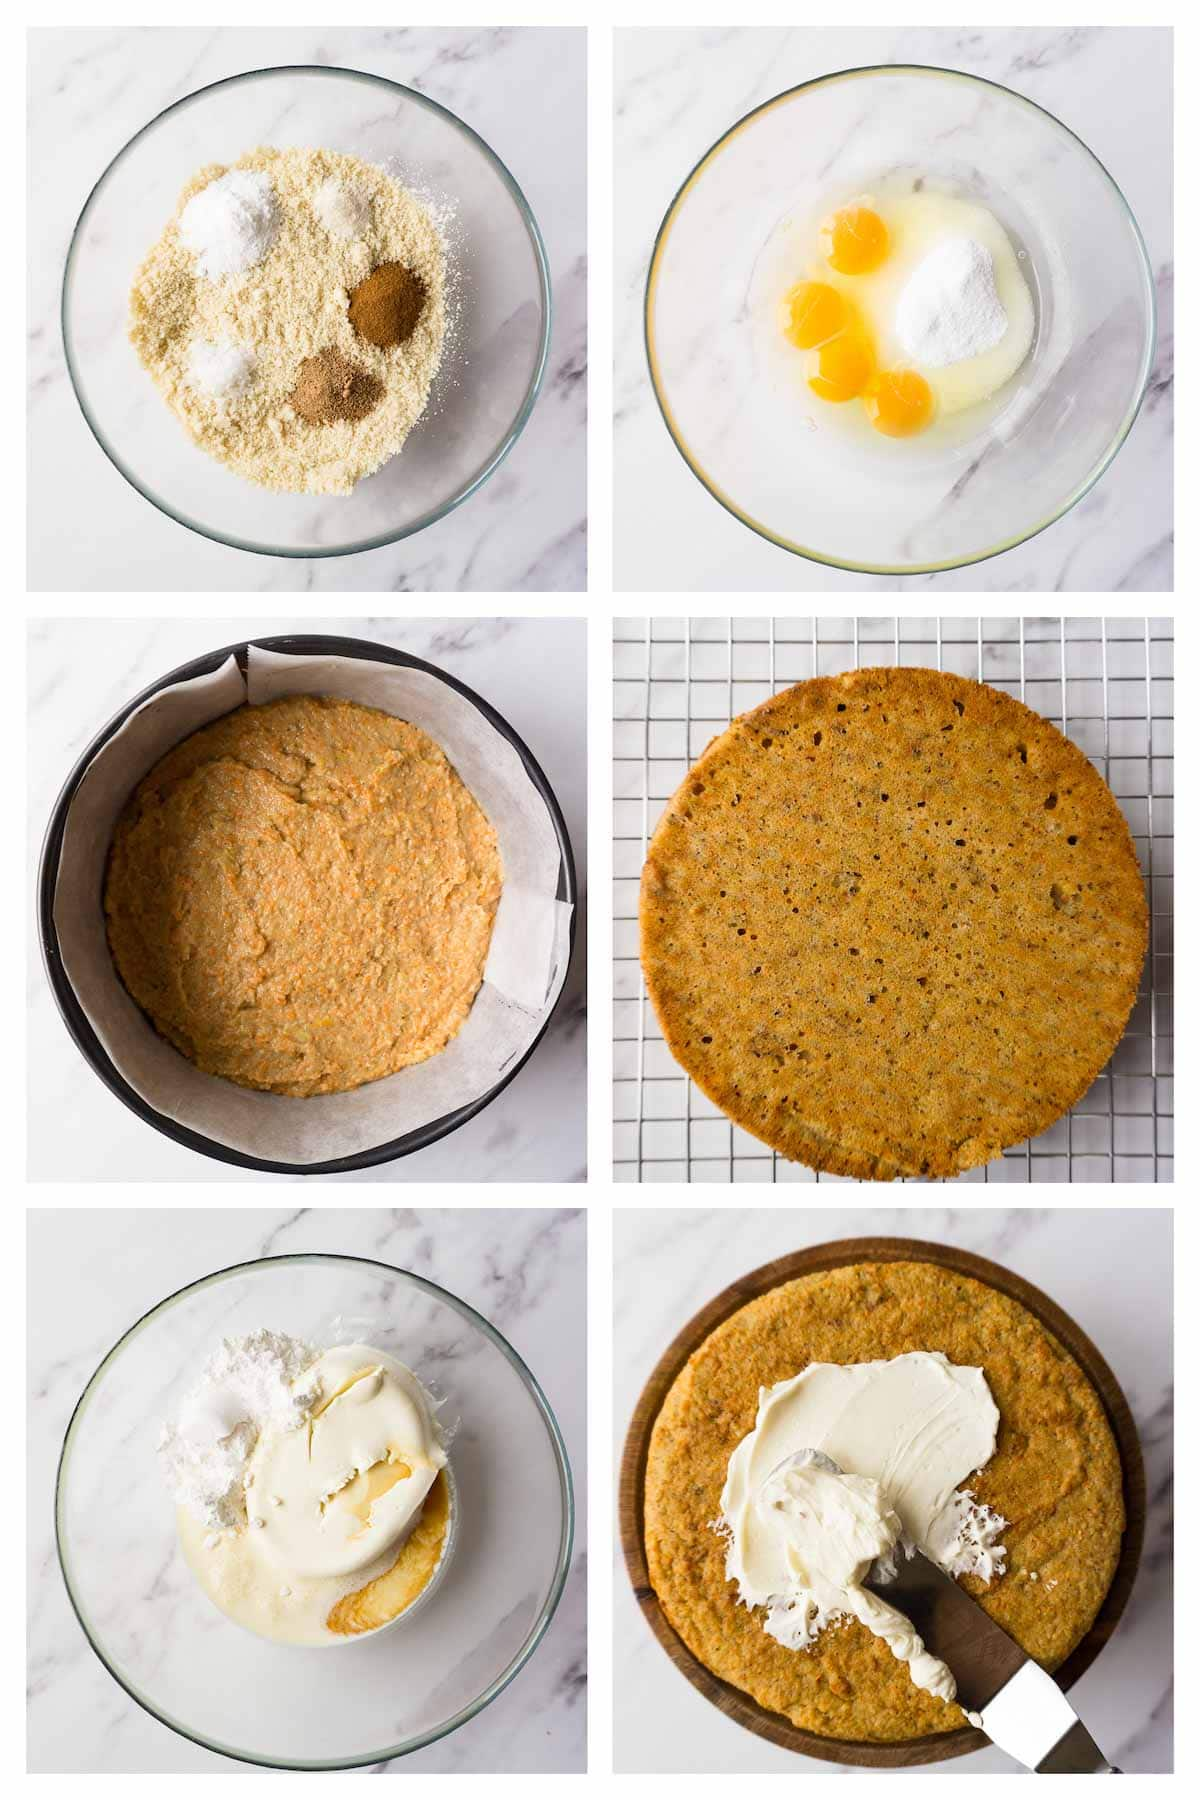 6 steps collage image showing how to make keto carrot cake.